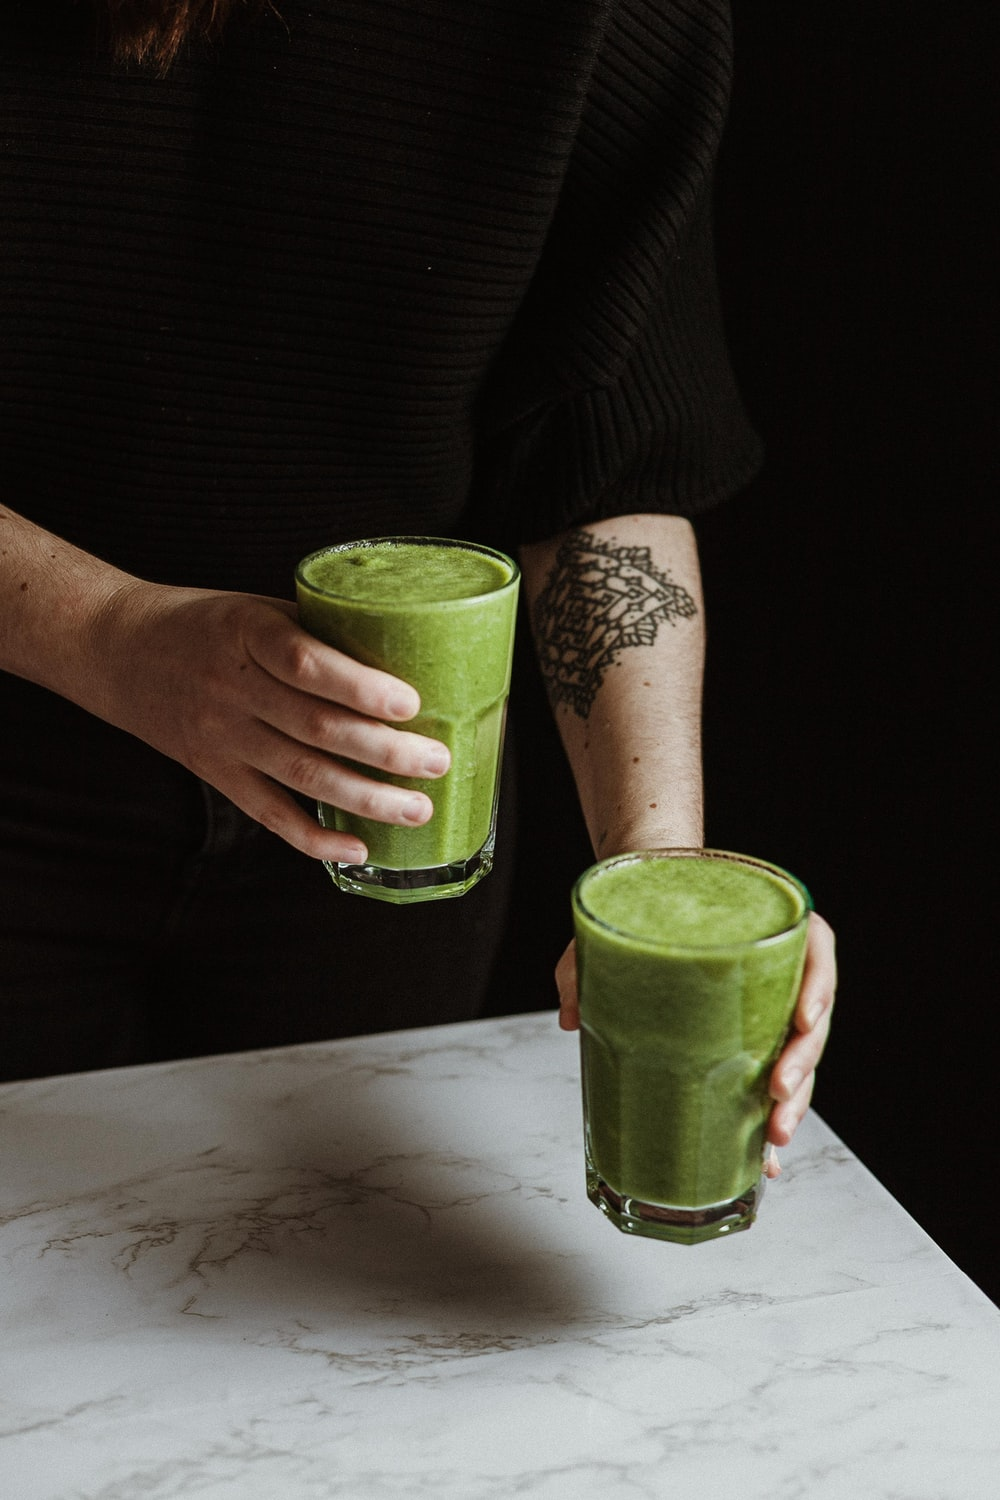 person holding green drinking glass